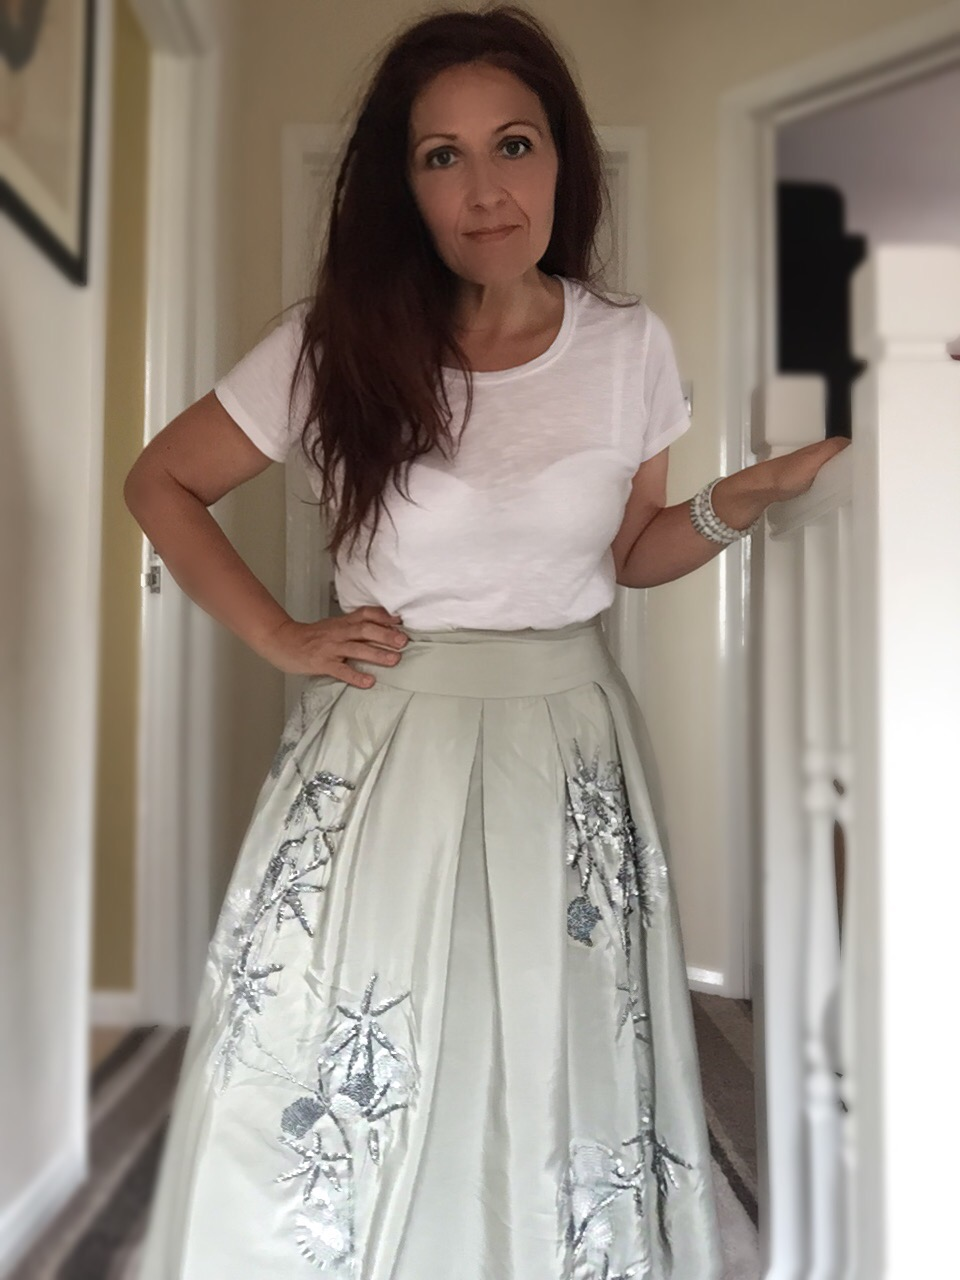 white t-shirt & monsoon embellished skirt via Always s blue sky girl styling blog